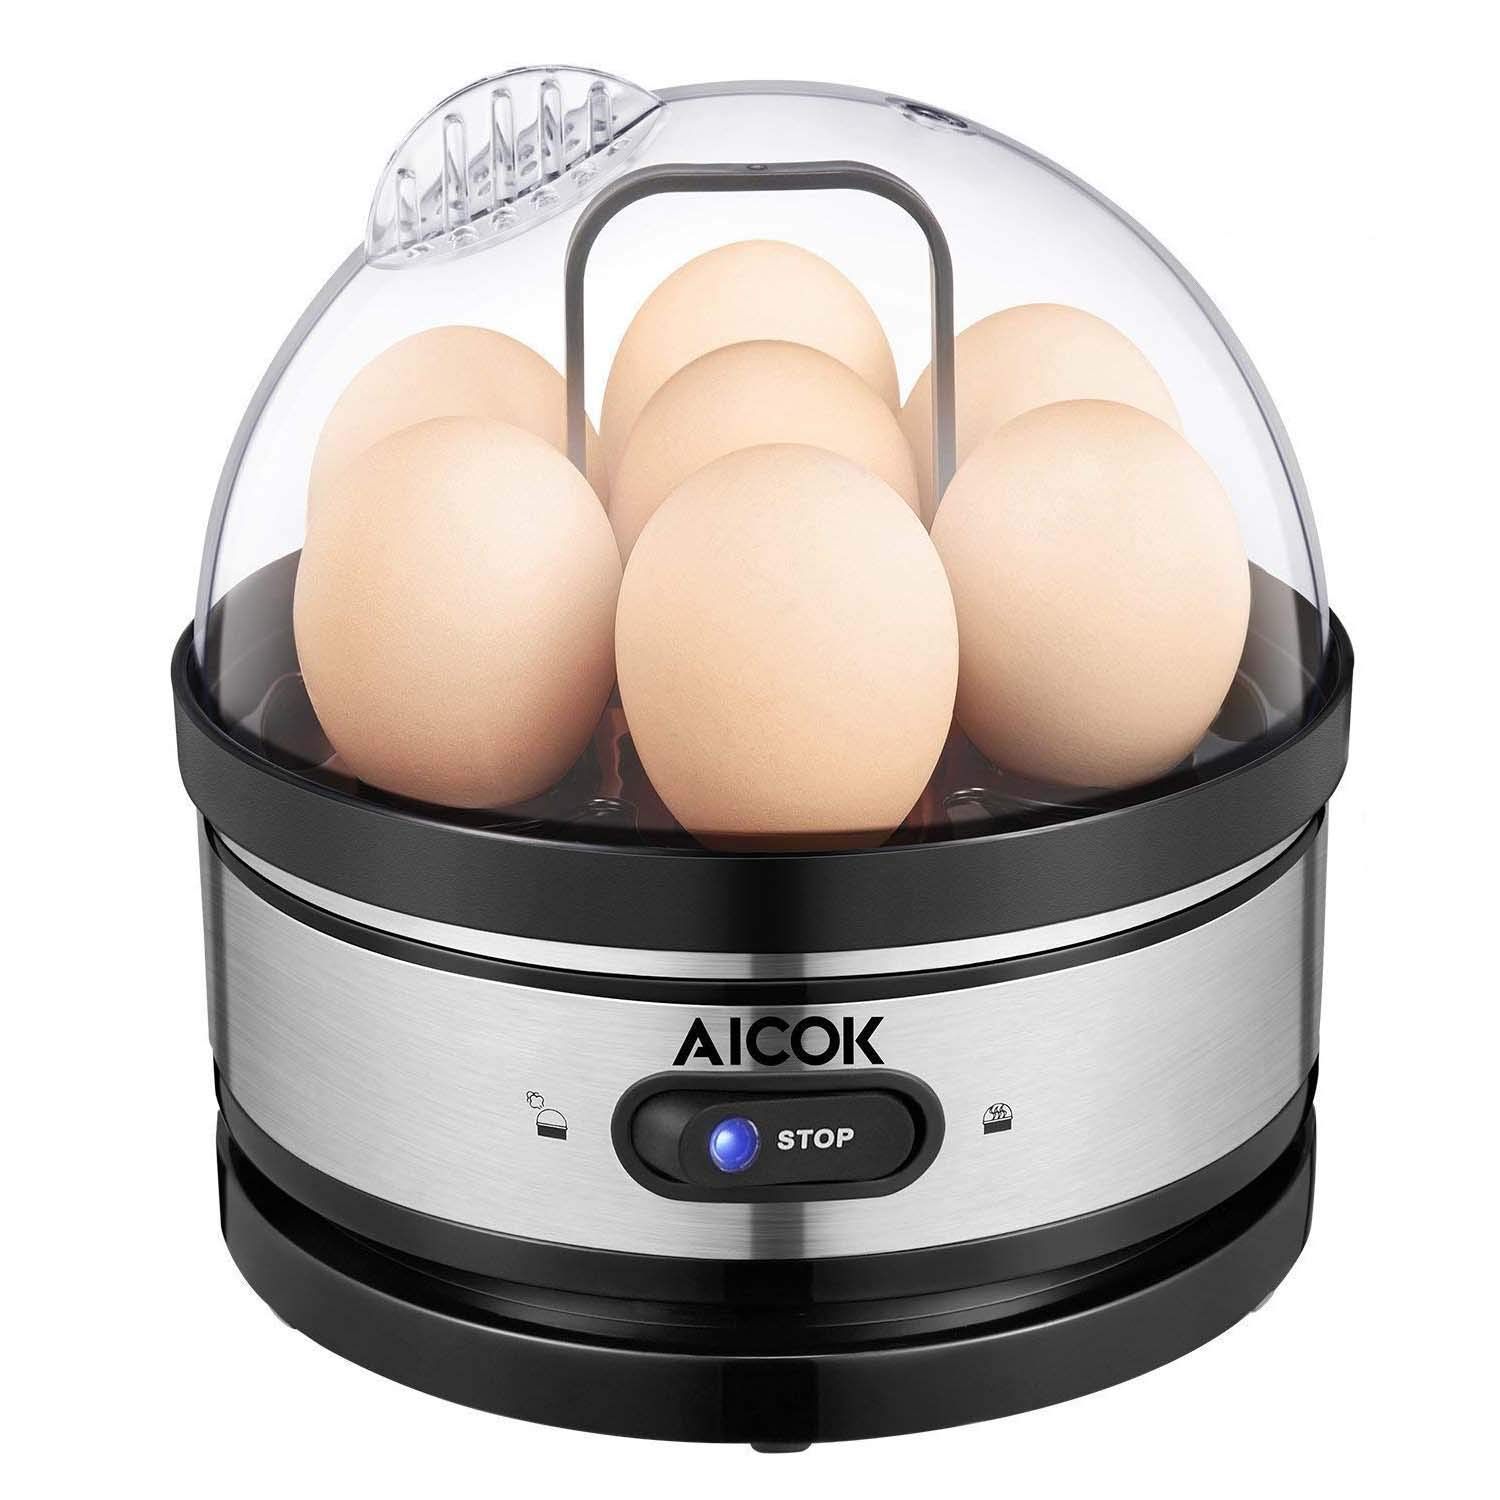 Egg cooker, AICOK Stainless Steel 7 Egg Capacity Rapid Egg Boiler with 2 BPA-Free Poachers & 2 Heating Modal, Electric Egg Steamer for Hard Boiled Eggs, Poached Eggs, Omelets, Auto Power Off by AICOK